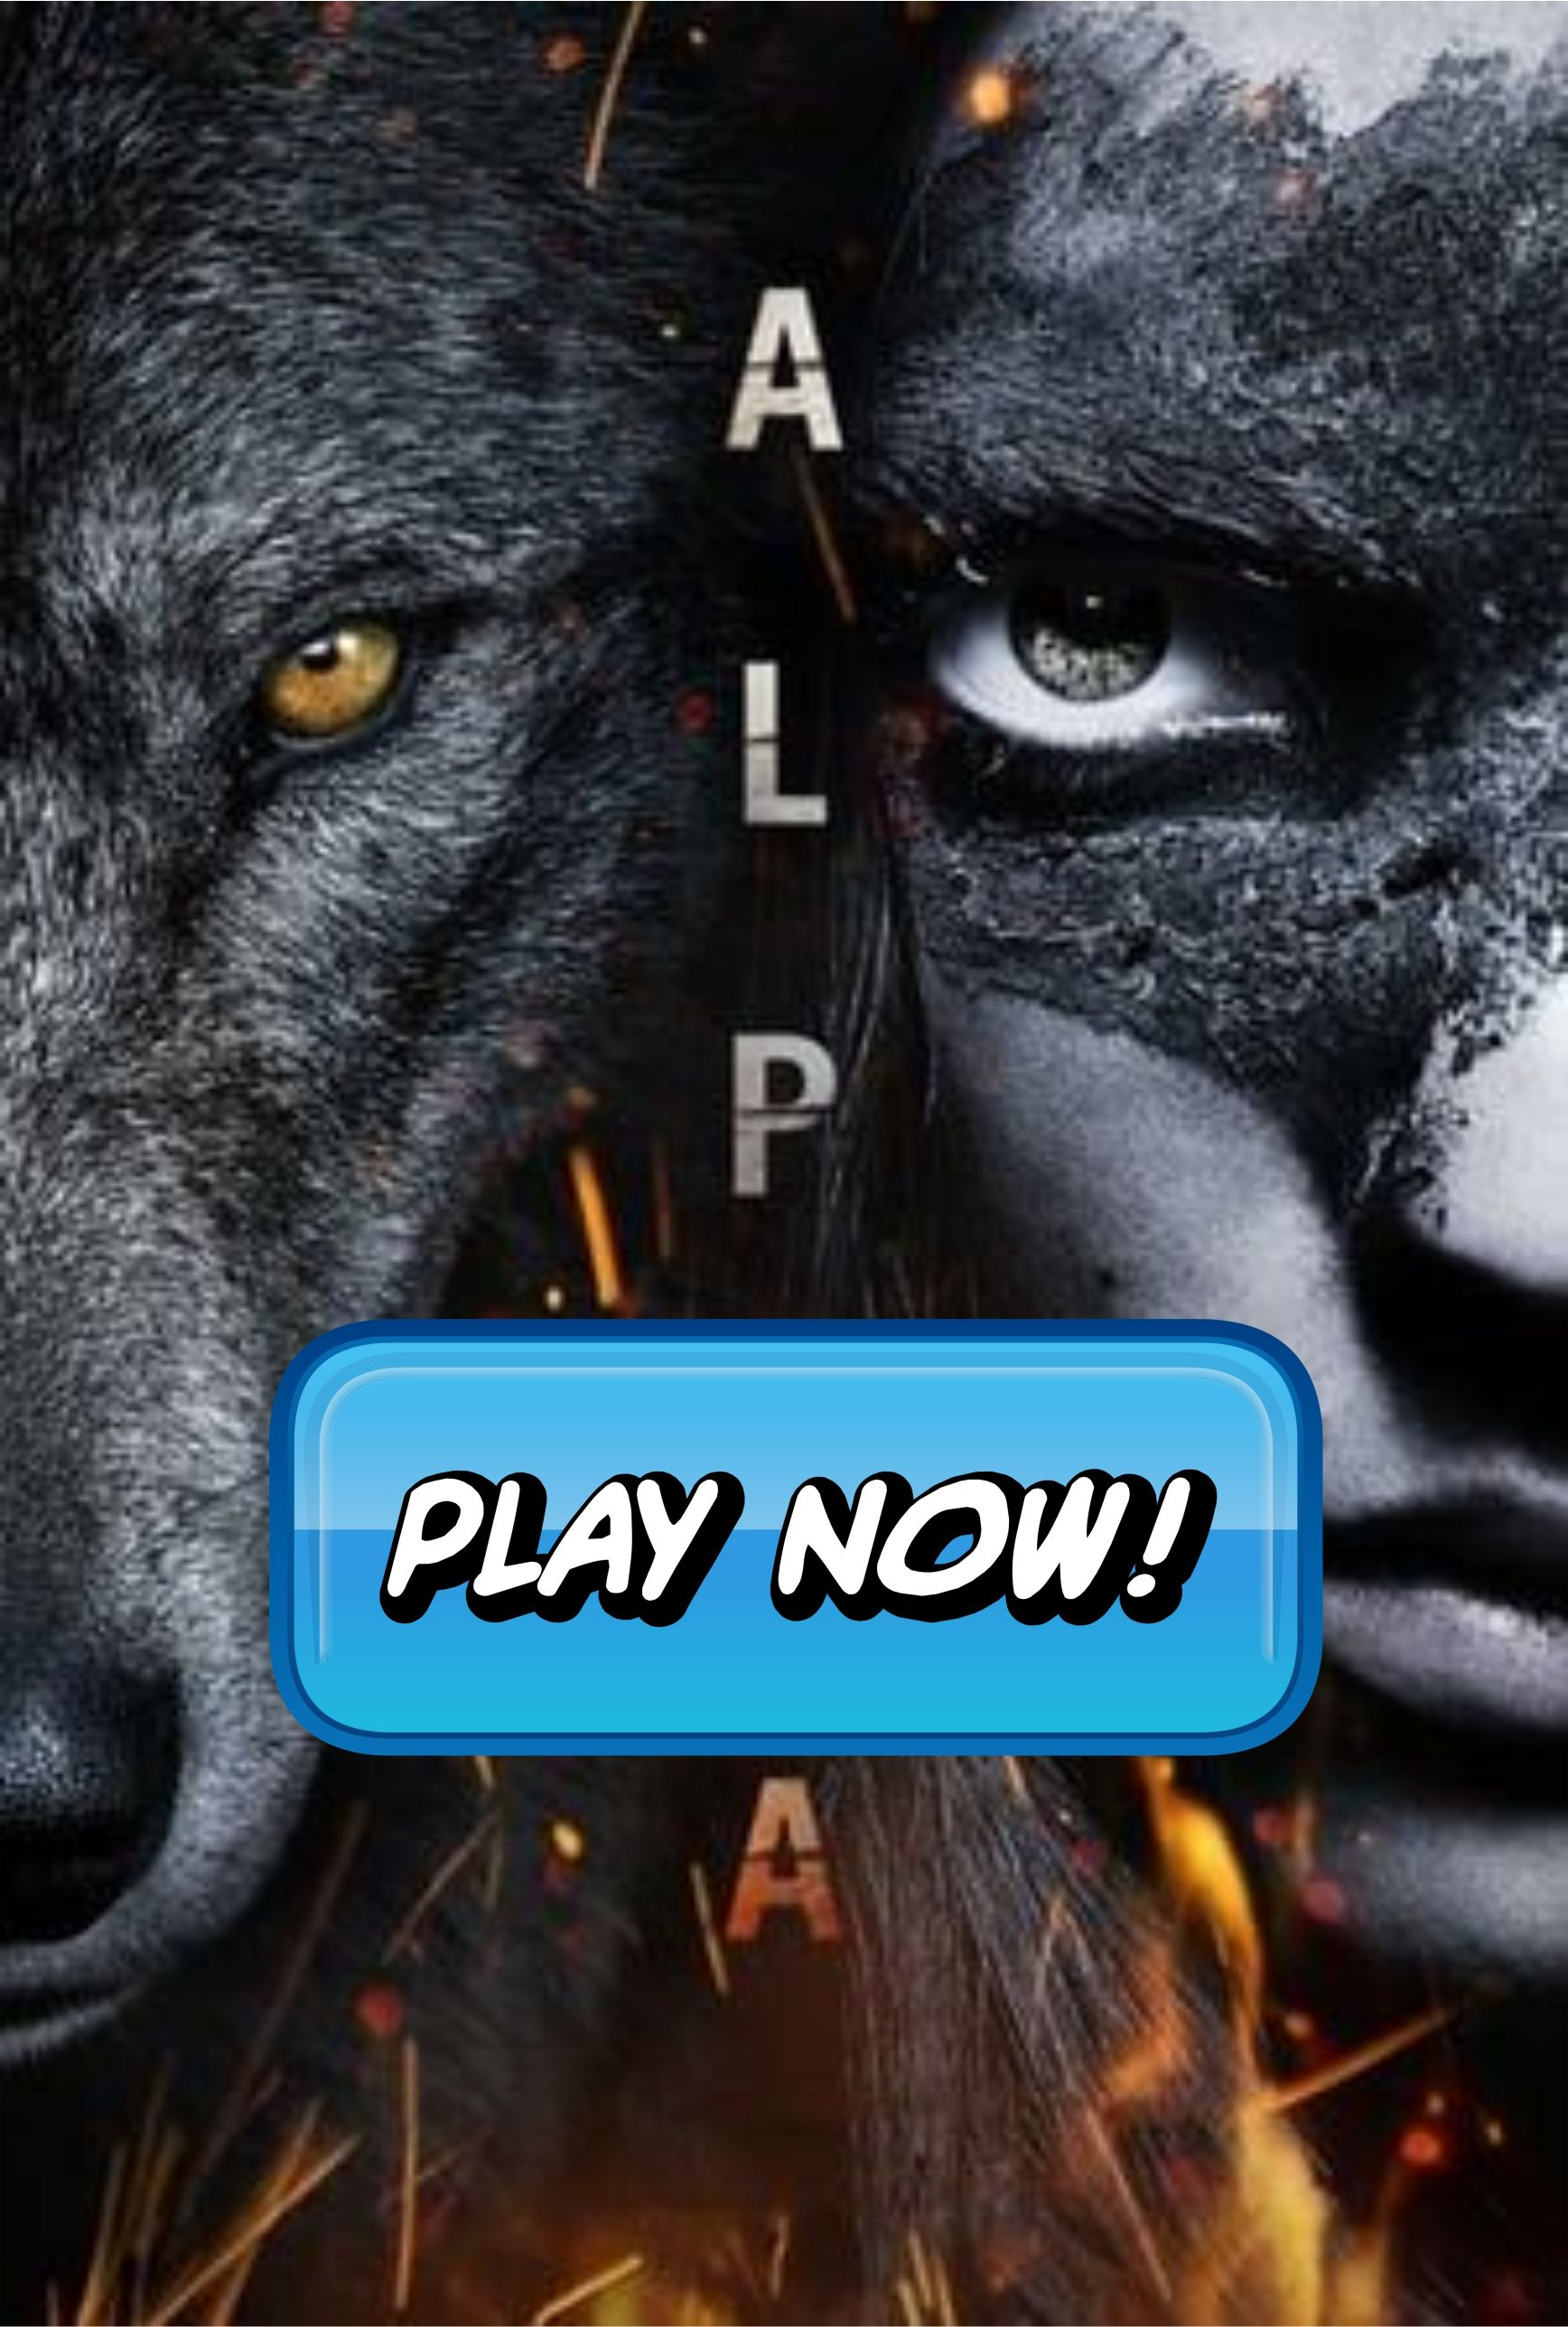 Alpha Blue Movie ver-hd]™ alpha español latino full hd 1080p | movies, bison